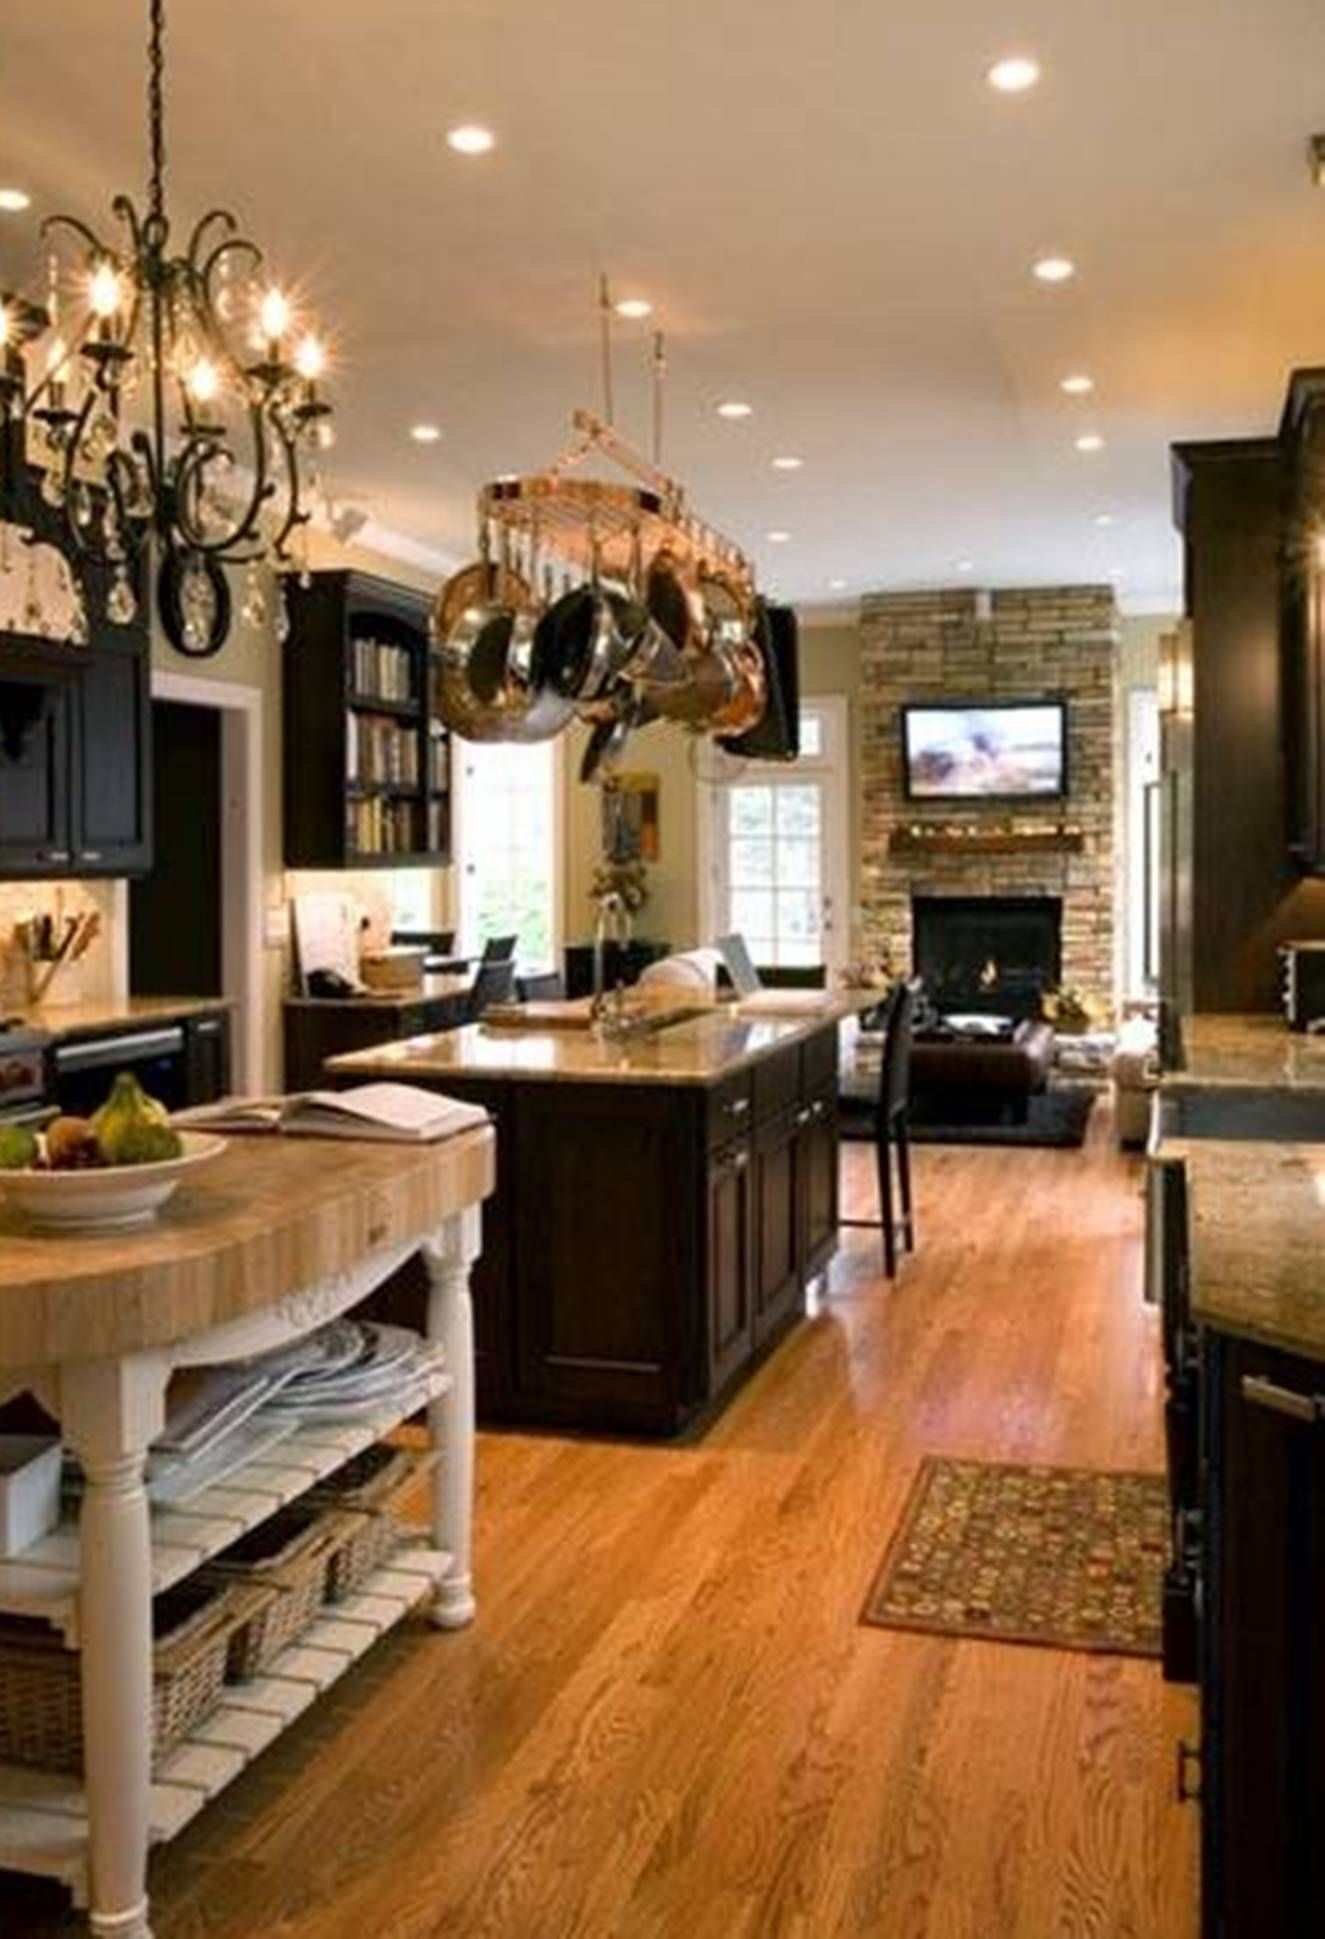 Kitchen Island Ideas Open Floor Plan kitchen design with double island, seating area and open kitchen